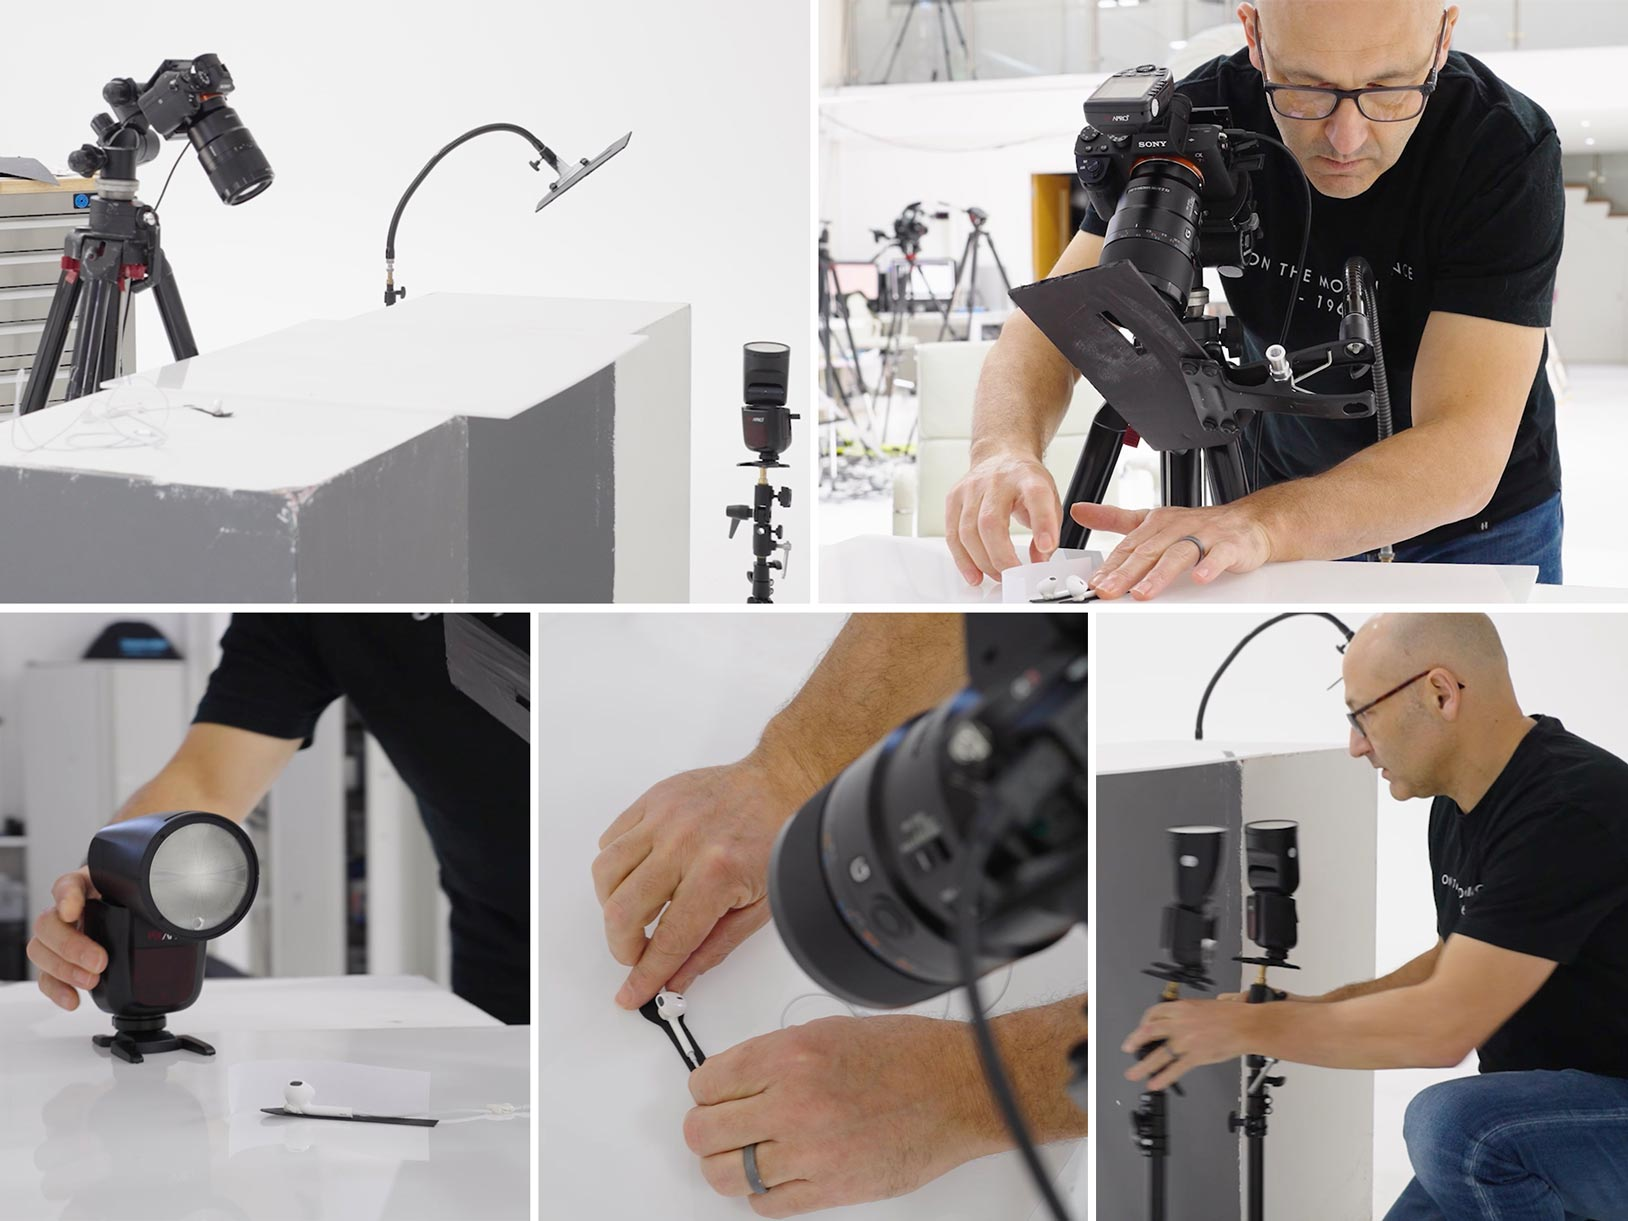 Setup for small product photography